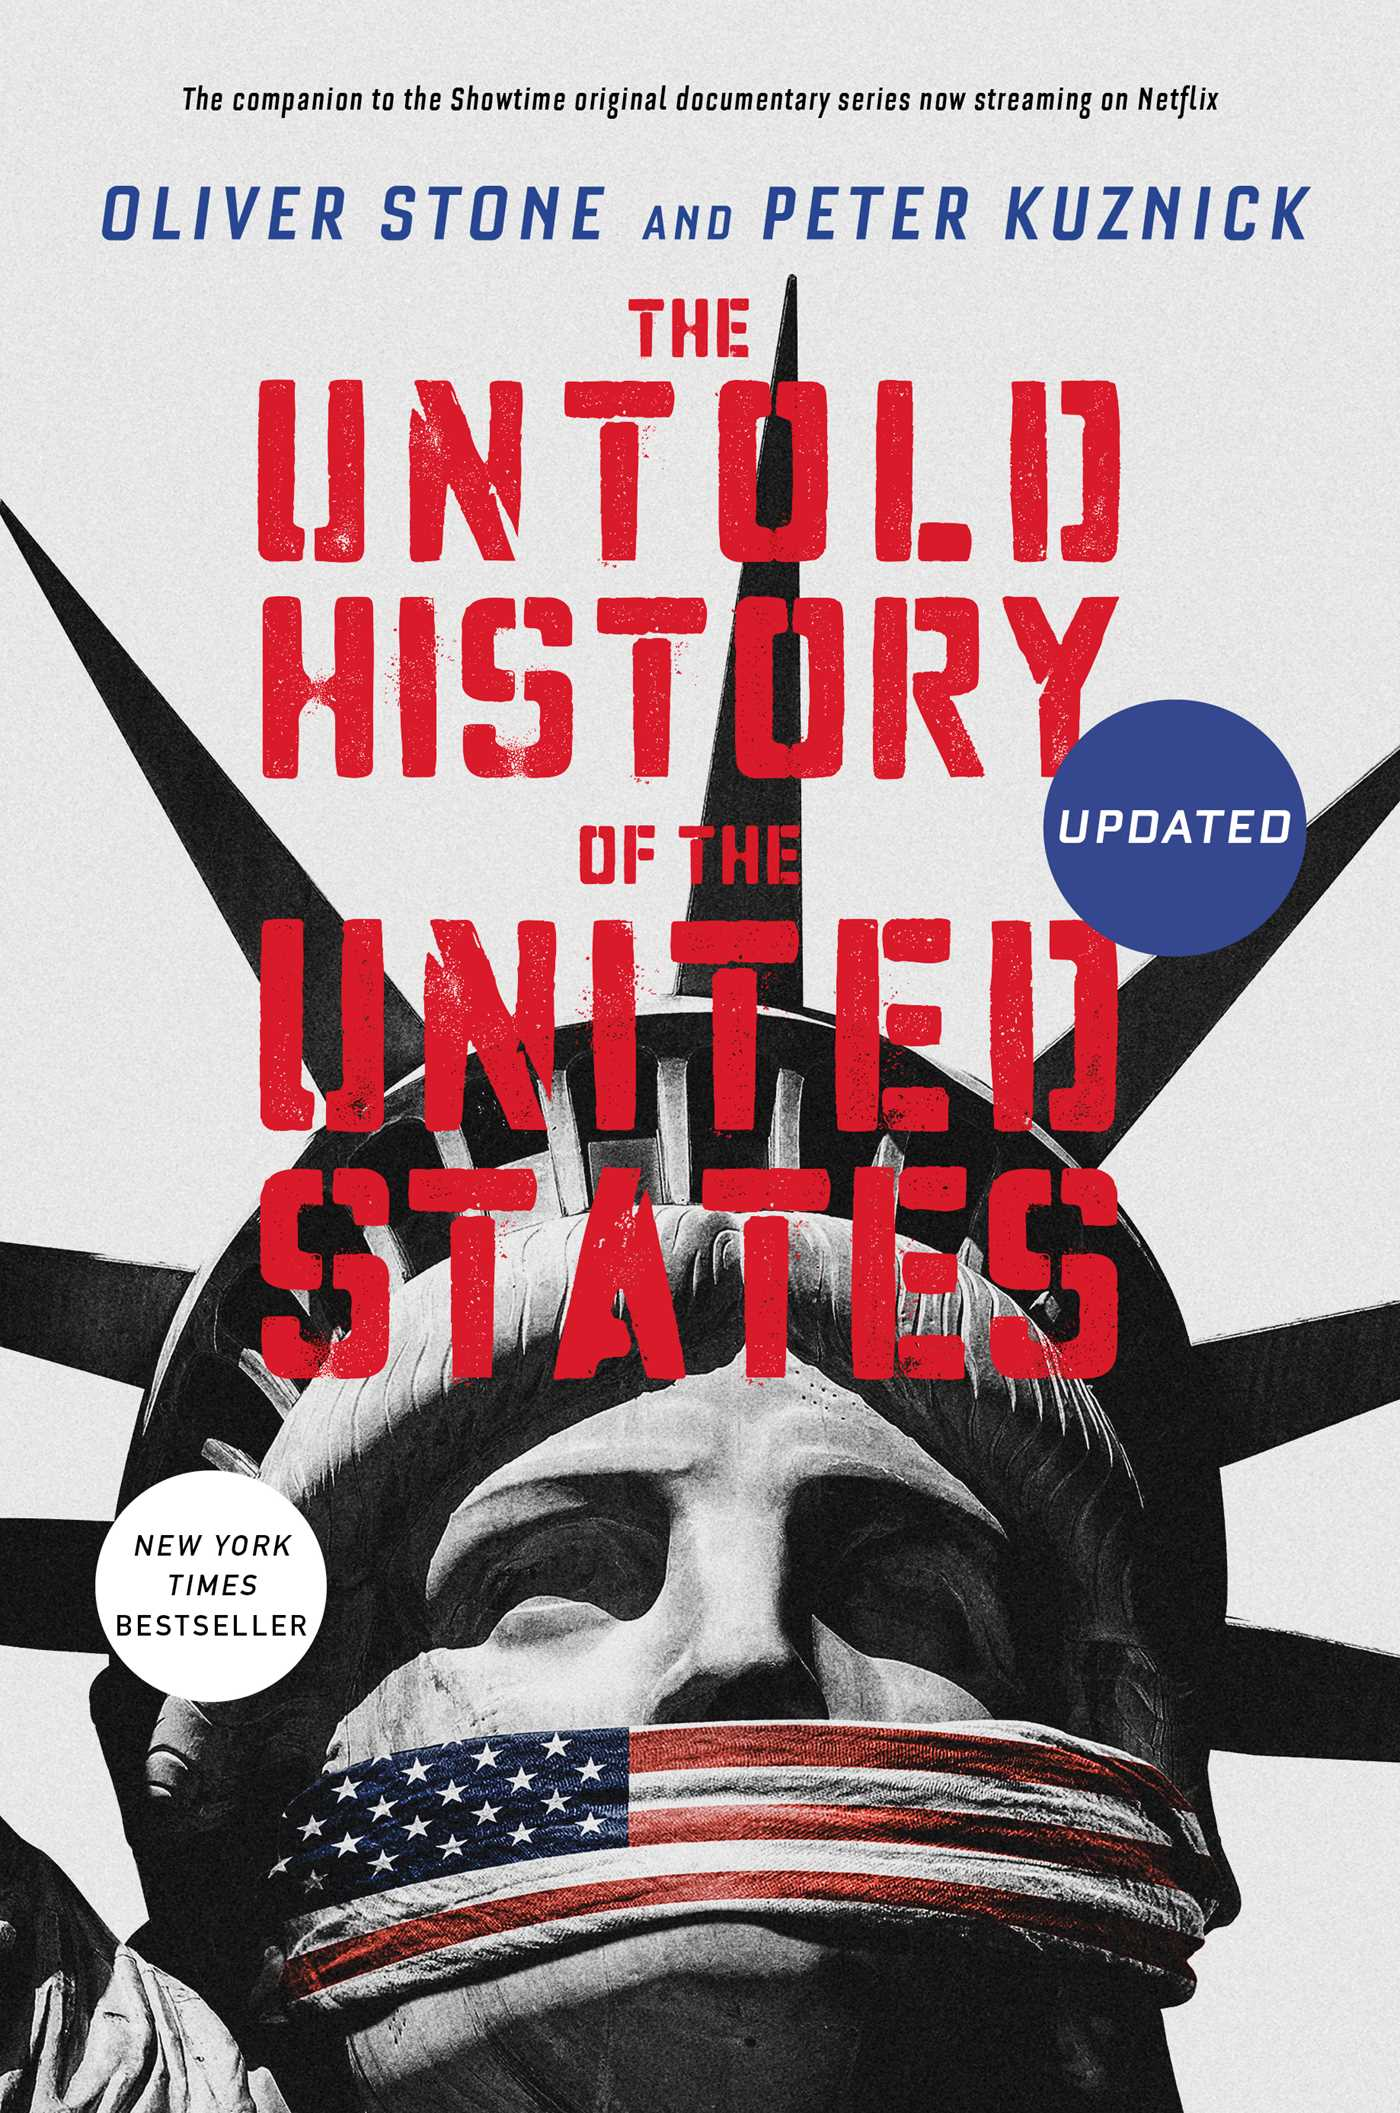 The untold history of the united states 9781982102531 hr